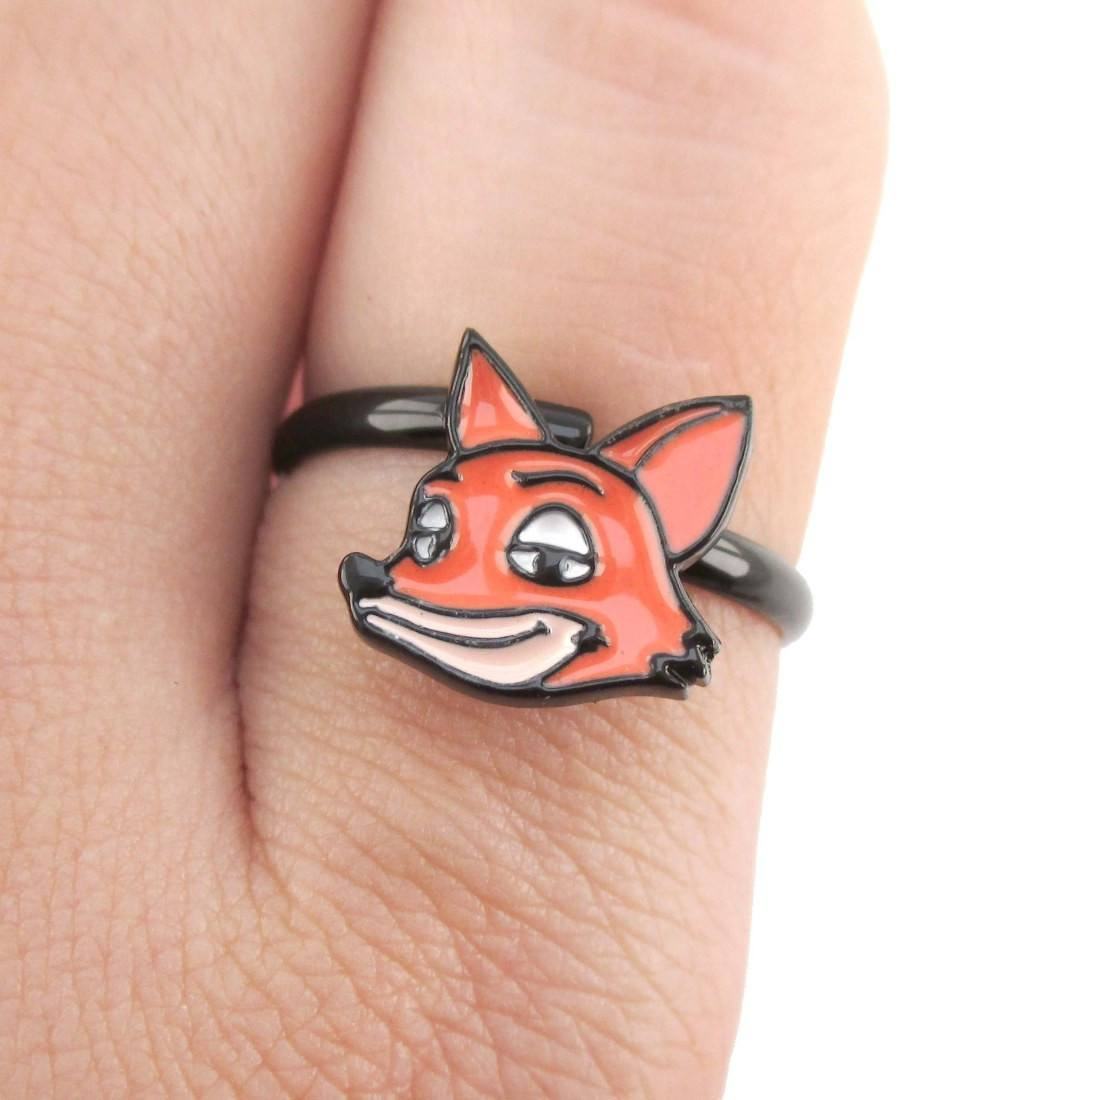 Zootopia Nick Wilde Red Fox Shaped Adjustable Ring | DOTOLY